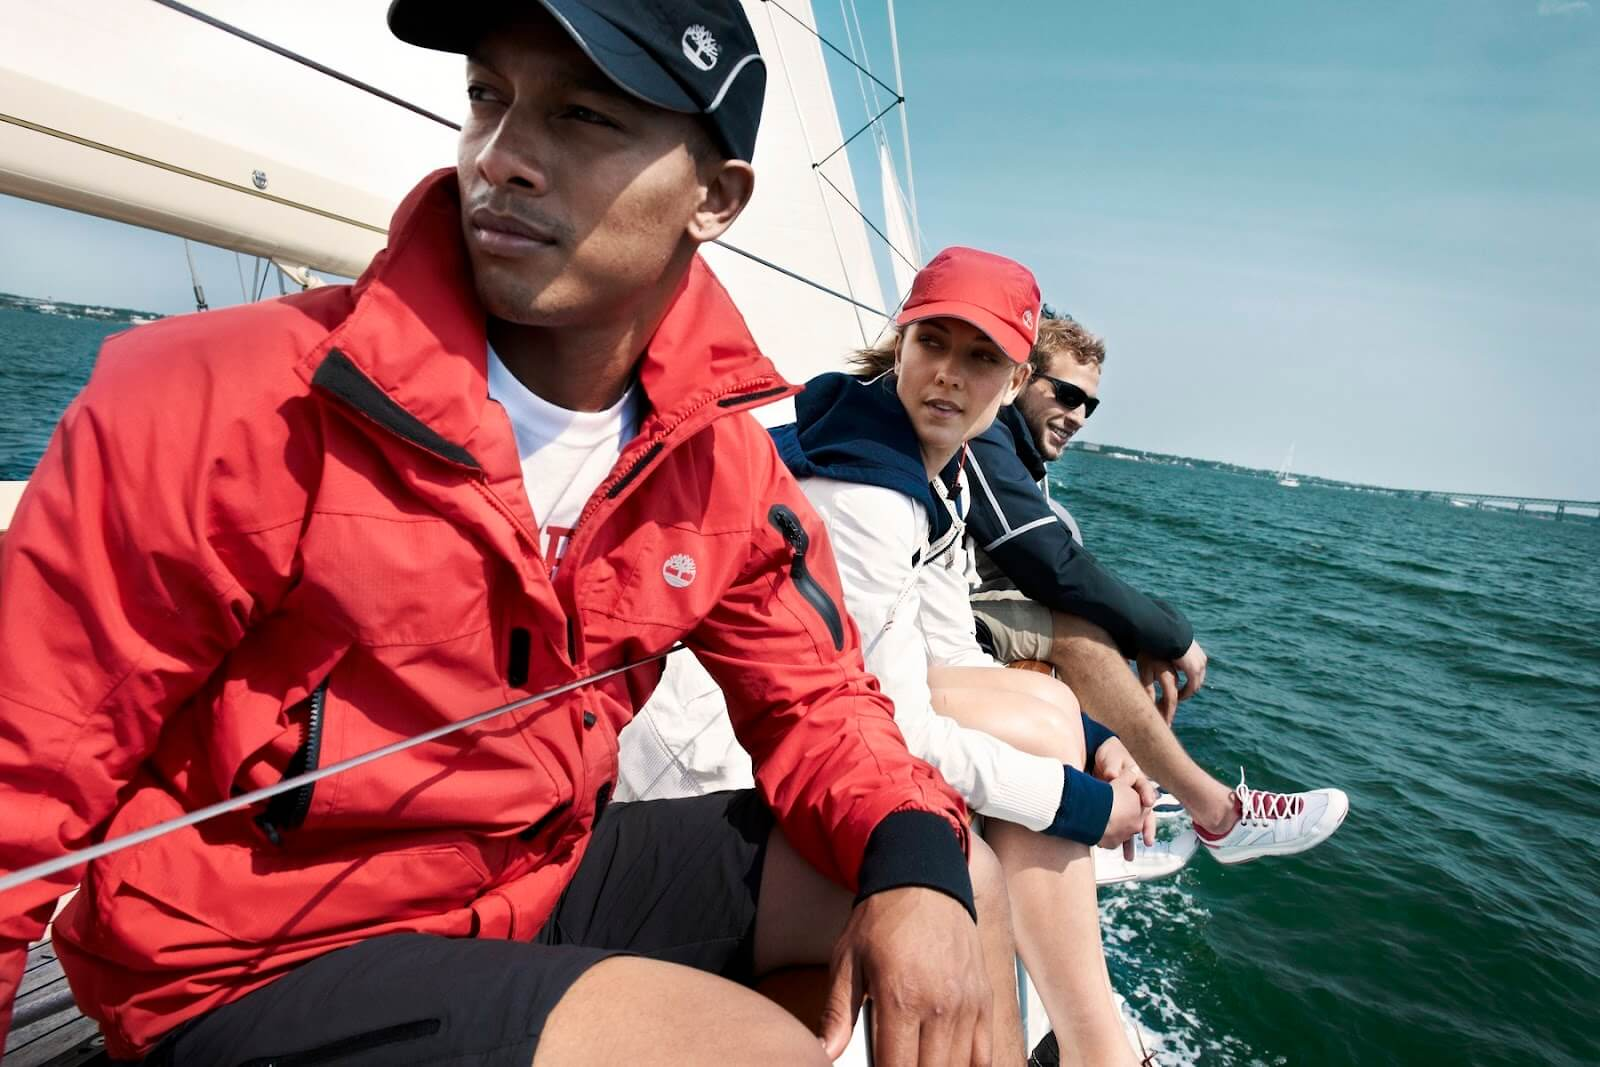 Formentor Race Jacket